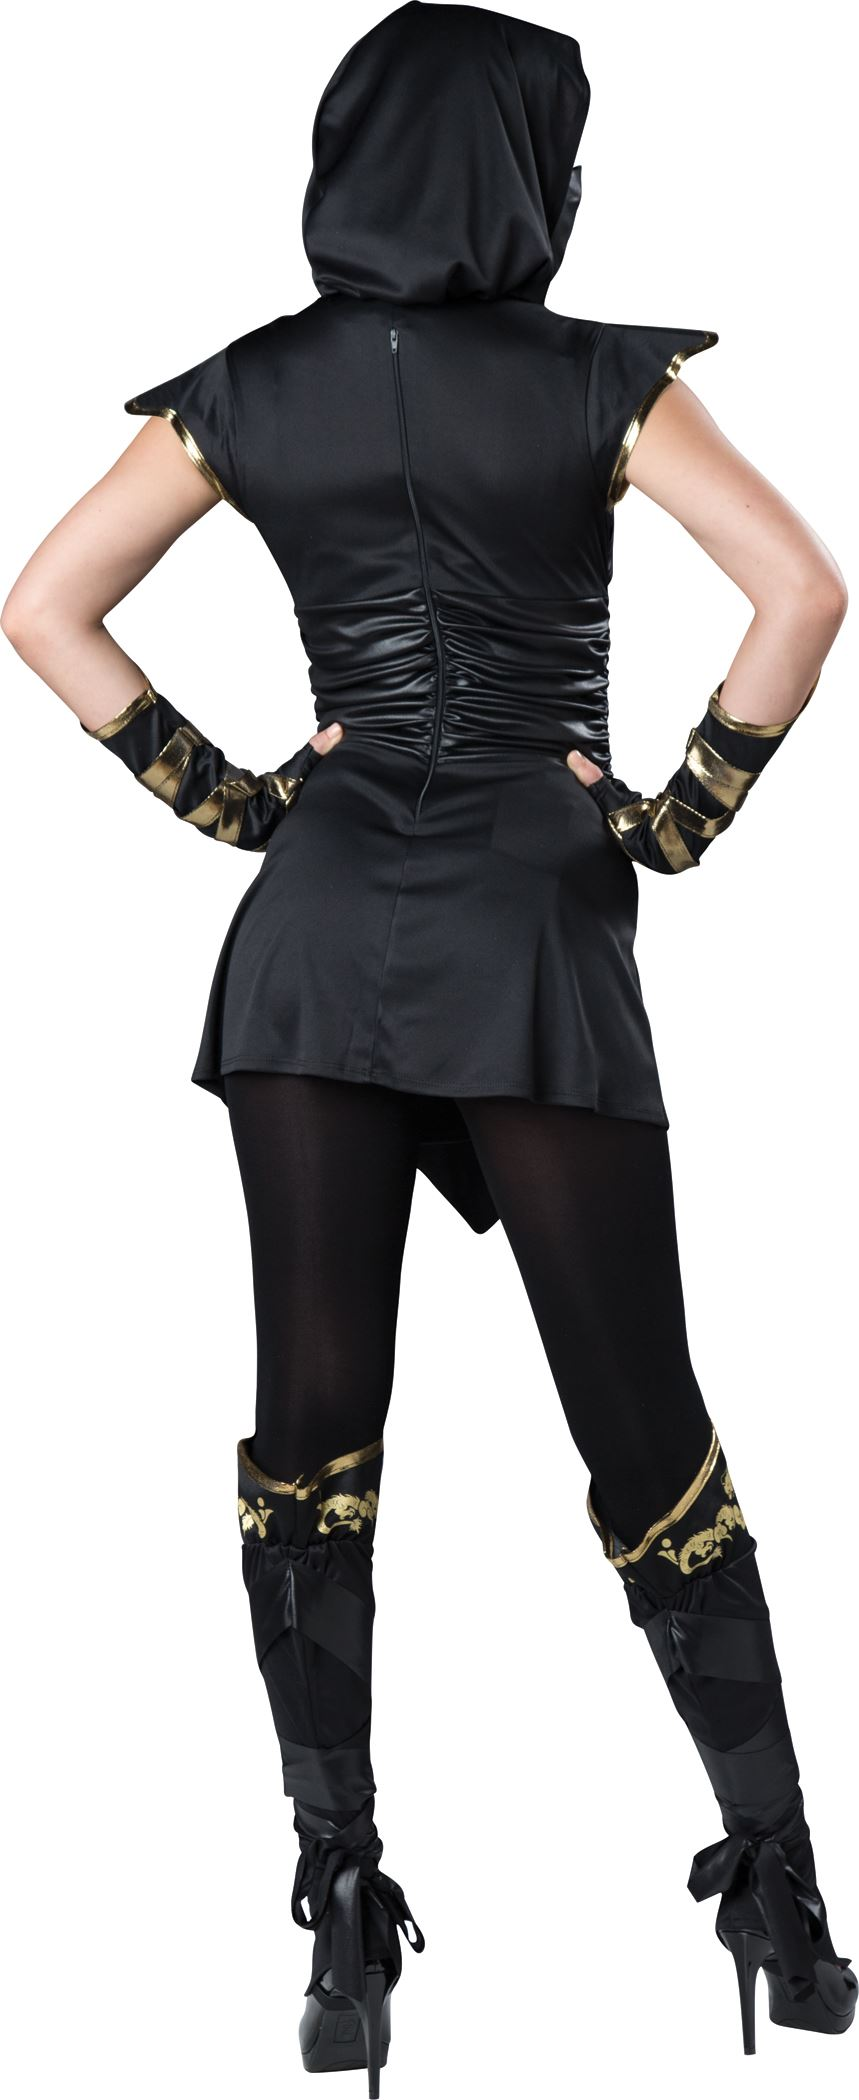 Adult Ninja Mystique Woman Costume | $84.99 | The Costume Land